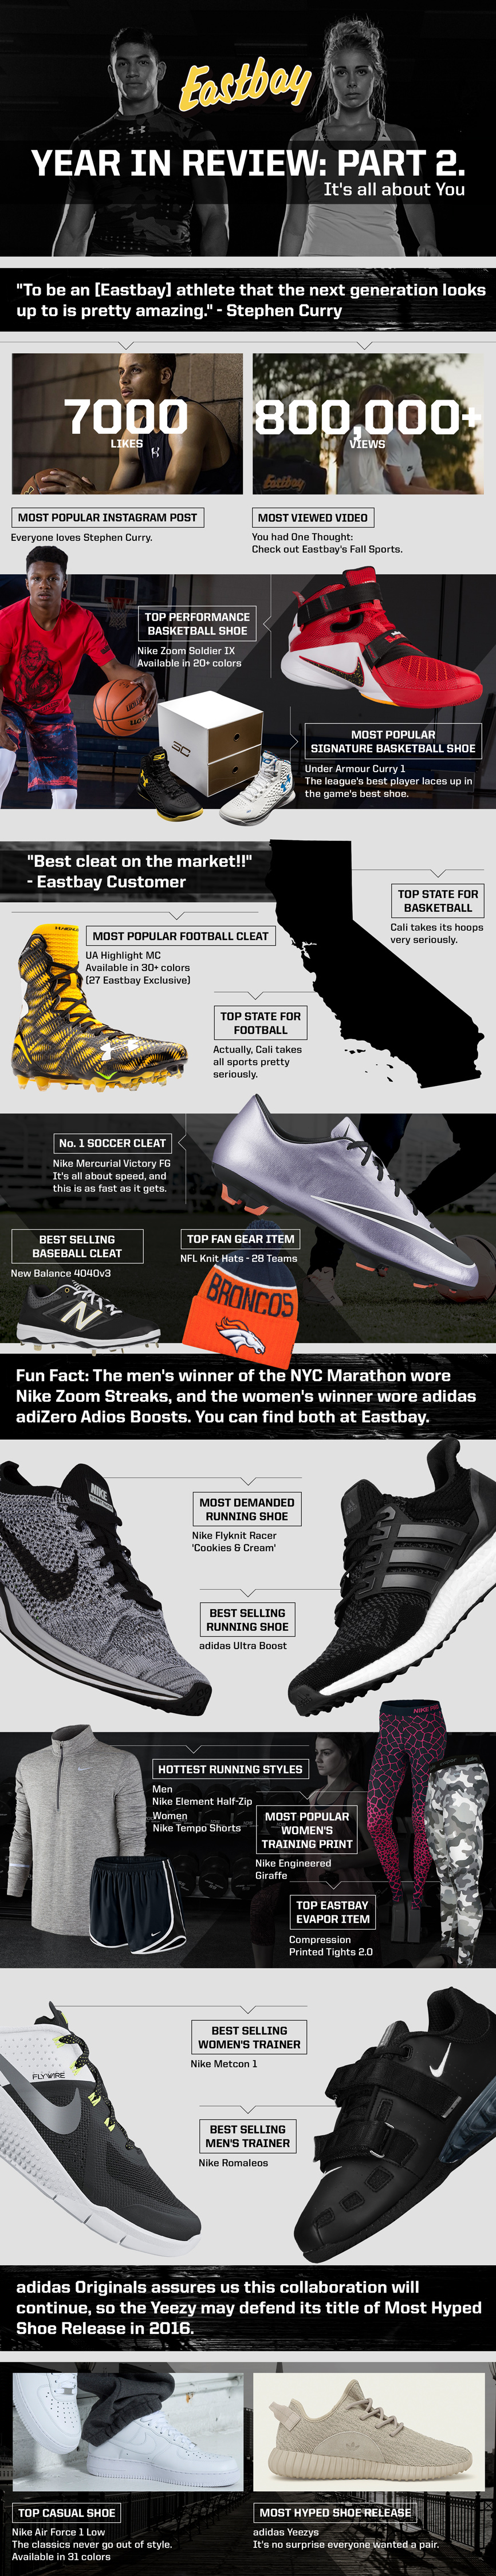 Eastbay-2015-in-review-infographic